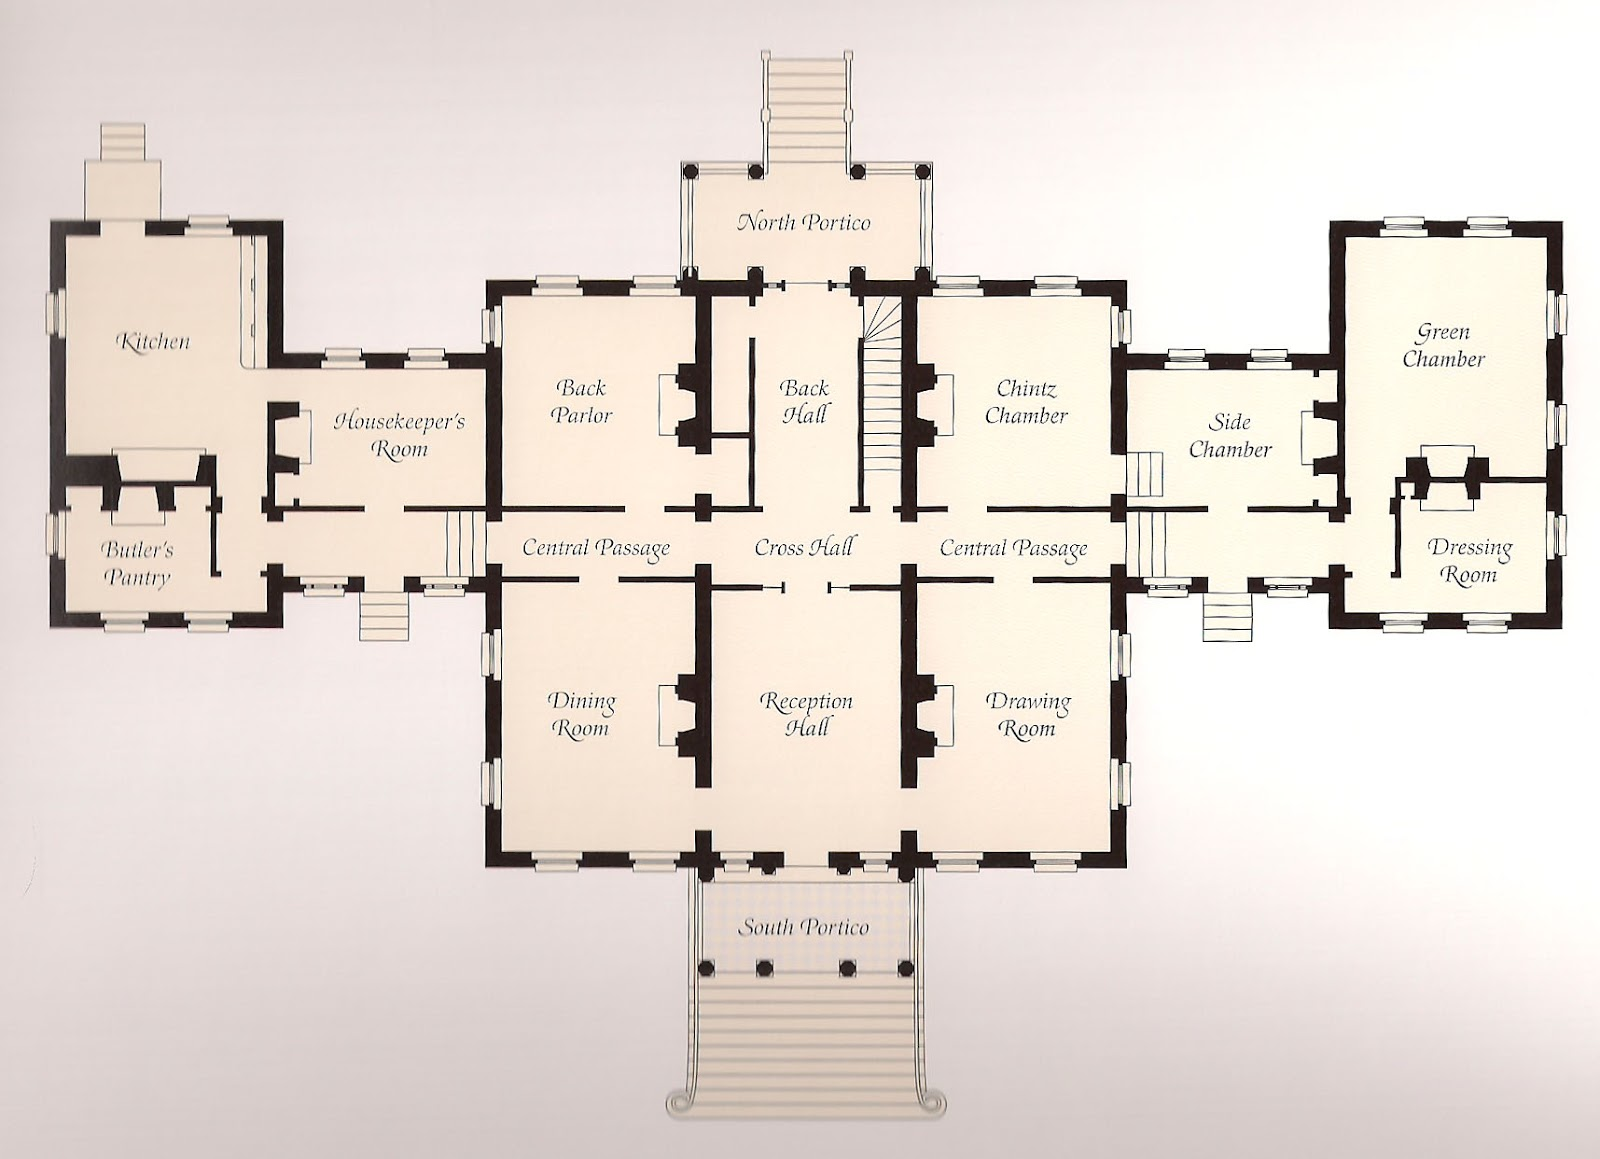 The Main Floor Plan Of Homewood Image From Homewood House